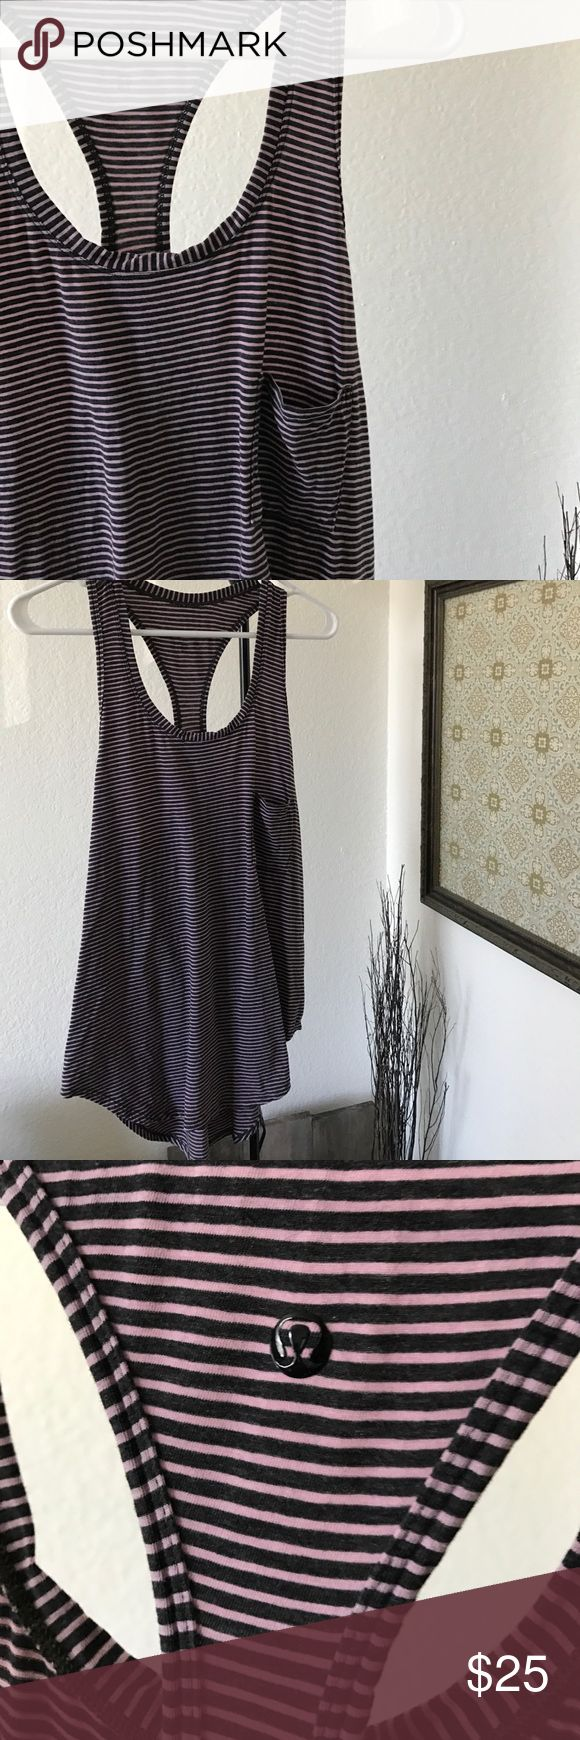 Lululemon Loose Tank Top Lululemon Tank Top - loose fit. No tag but is a size 6. Great condition! lululemon athletica Tops Tank Tops